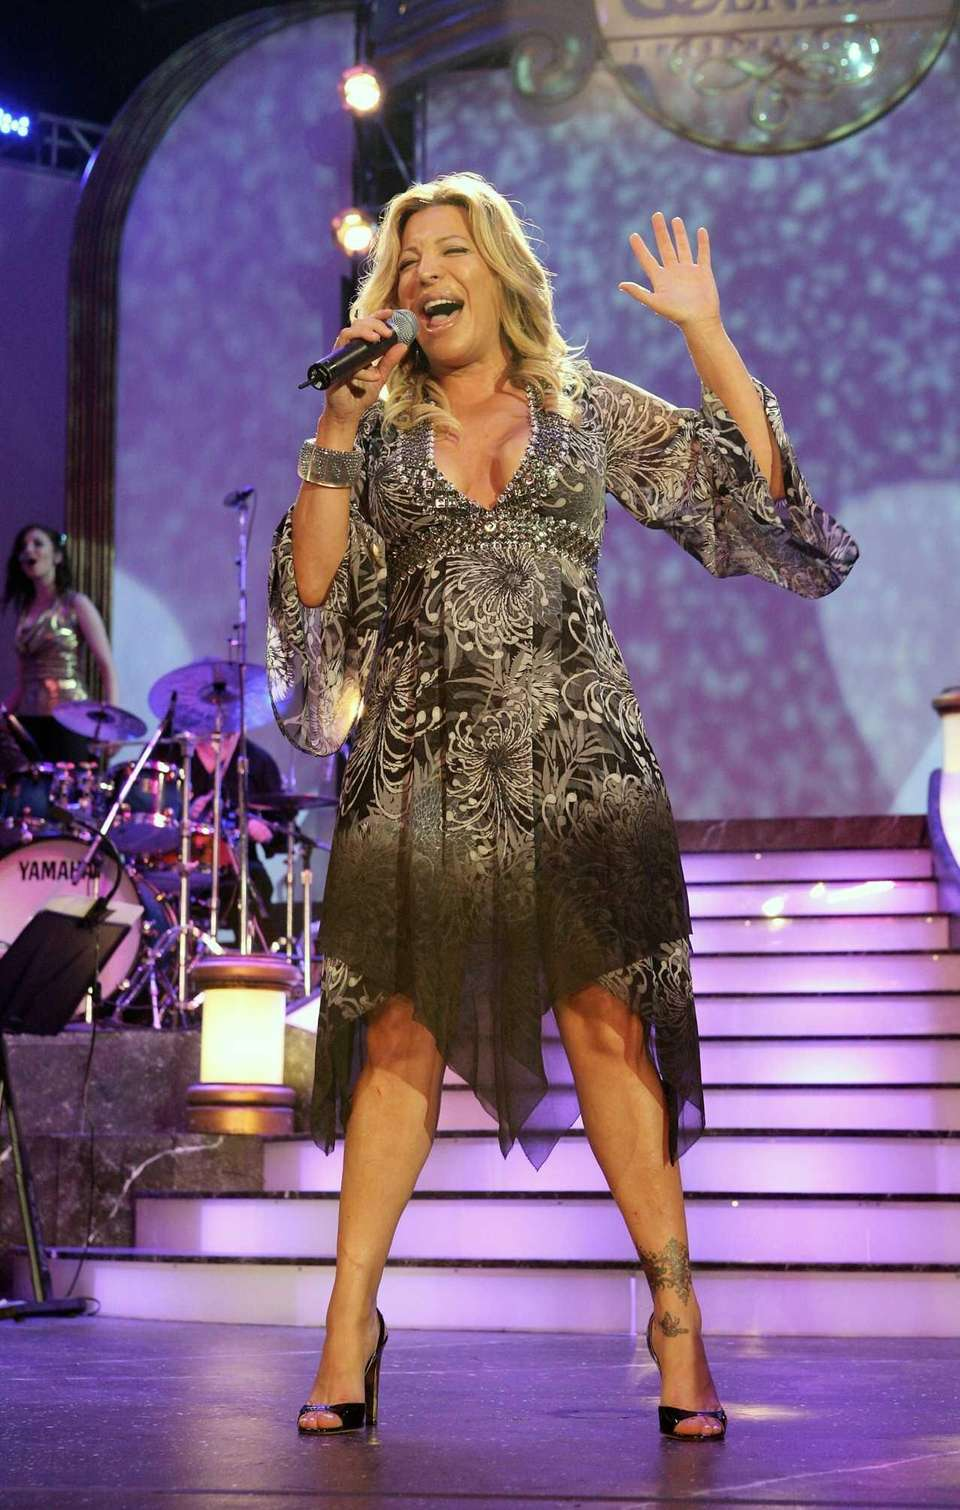 Singer Taylor Dayne performs during the 38th Anniversary